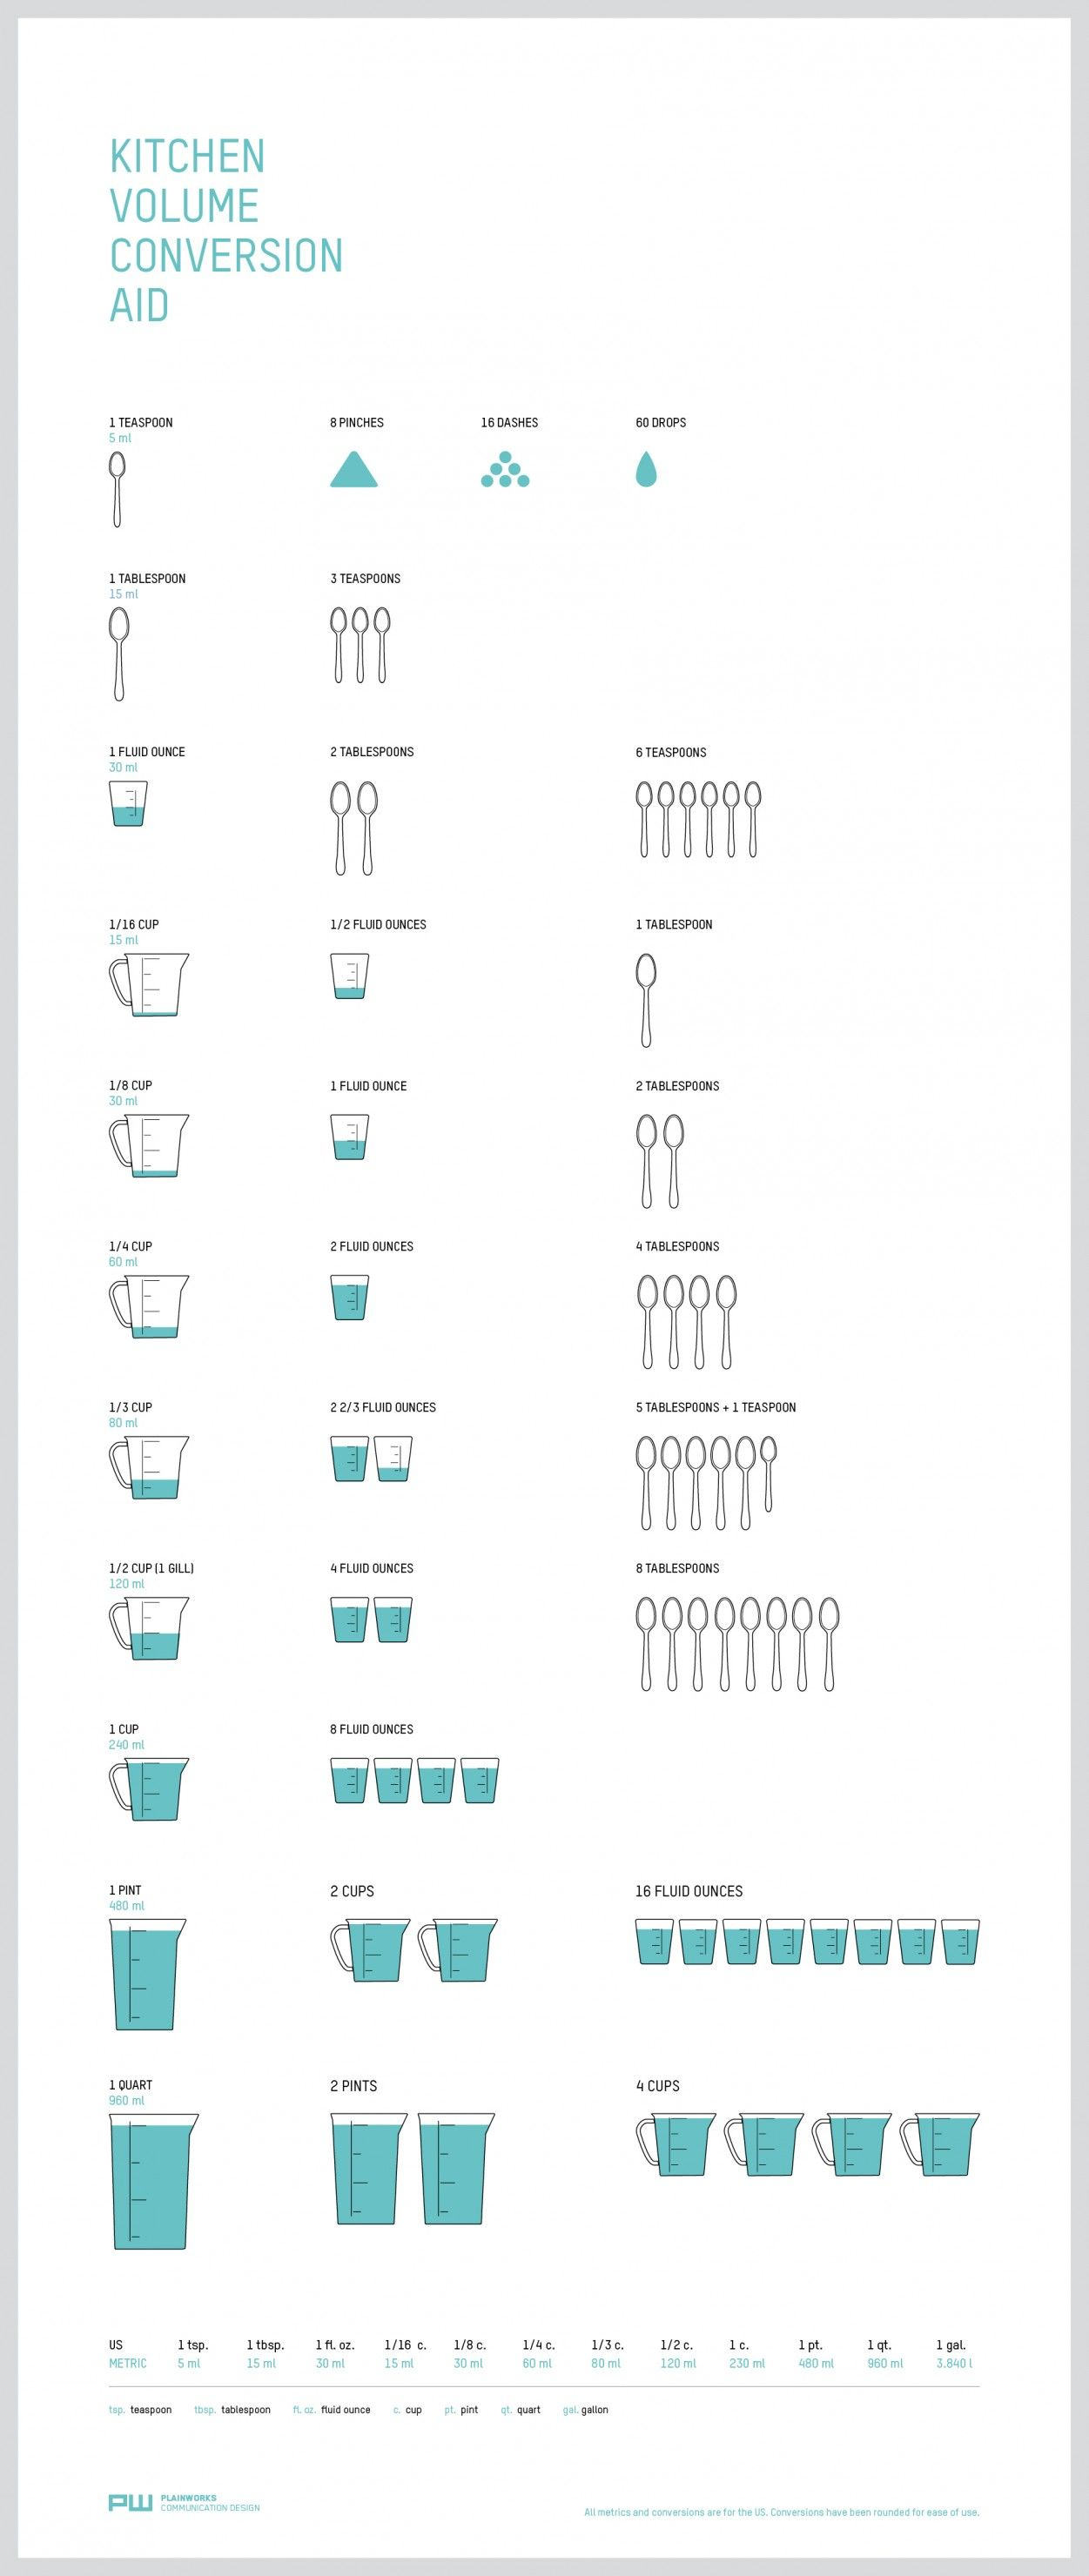 6 charts to make kitchen conversions easy kitchen conversion chart 6 charts to make kitchen conversions easy food tipscooking forumfinder Image collections